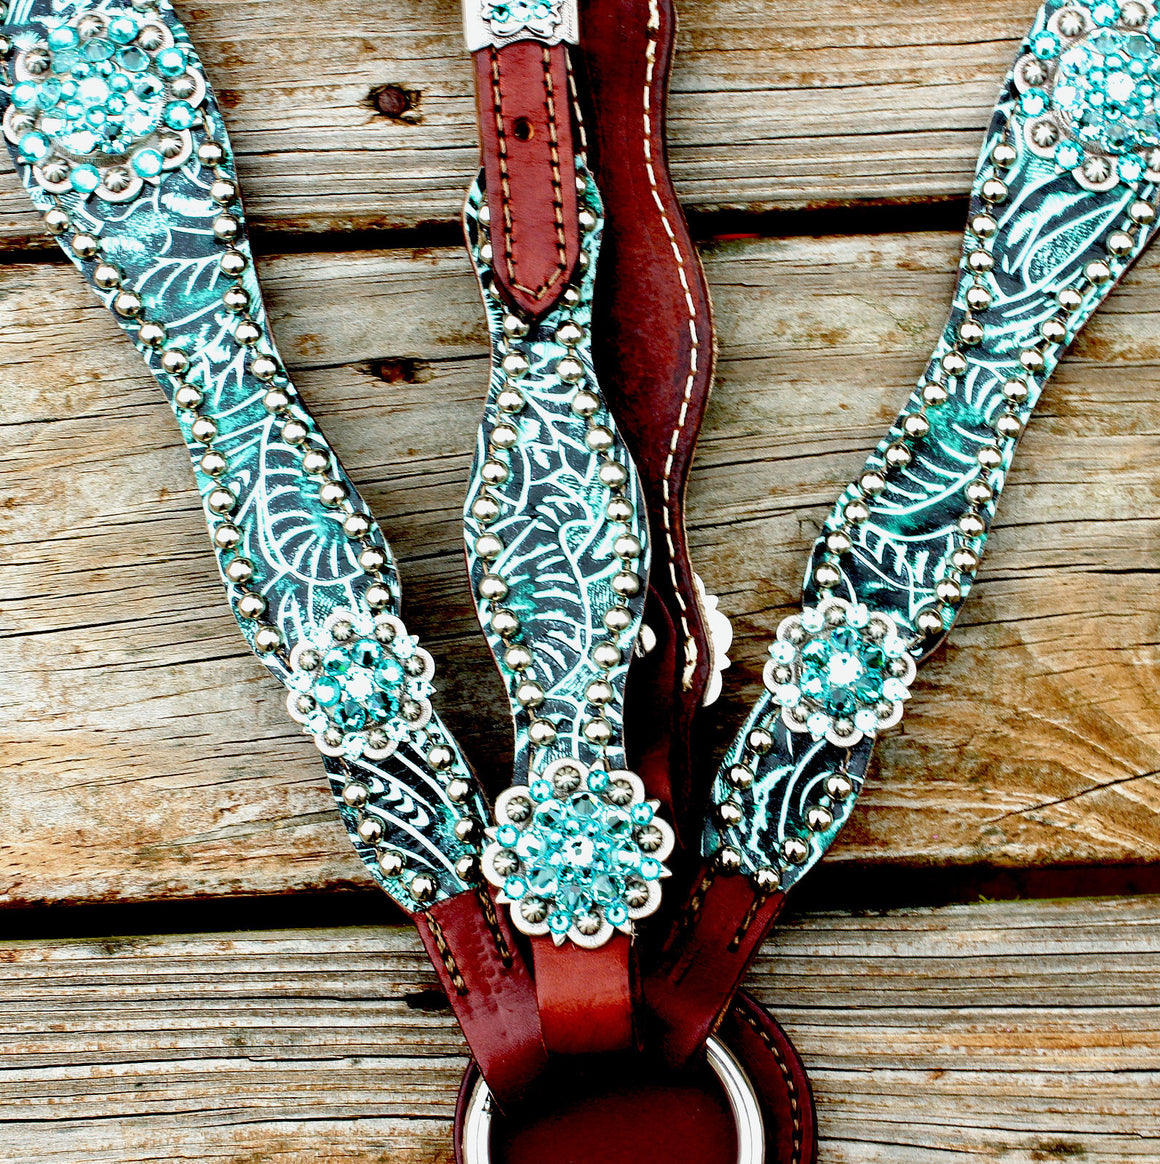 Teal Filigree/Chestnut Leather One Ear Tack Set w/Teal & Turquoise Crystal Rhinestone Conchos